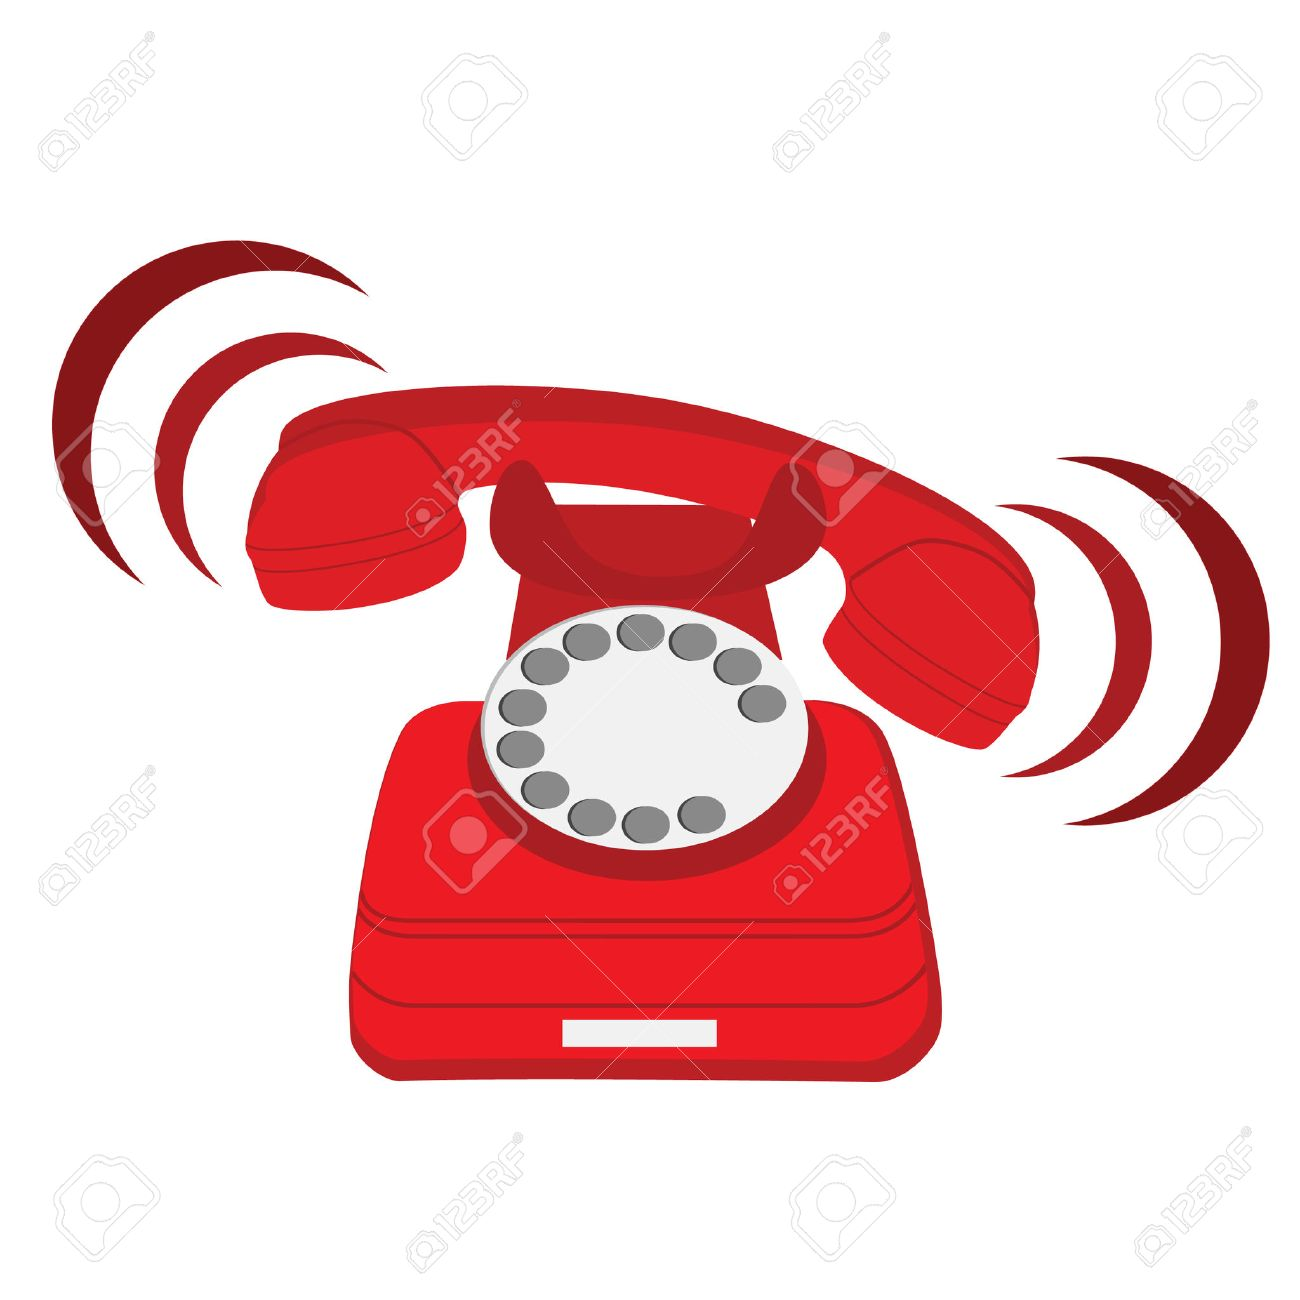 Vector illustration of ringing red stationary phone. Old red telephone. Red phone with rotary dial - 44108441